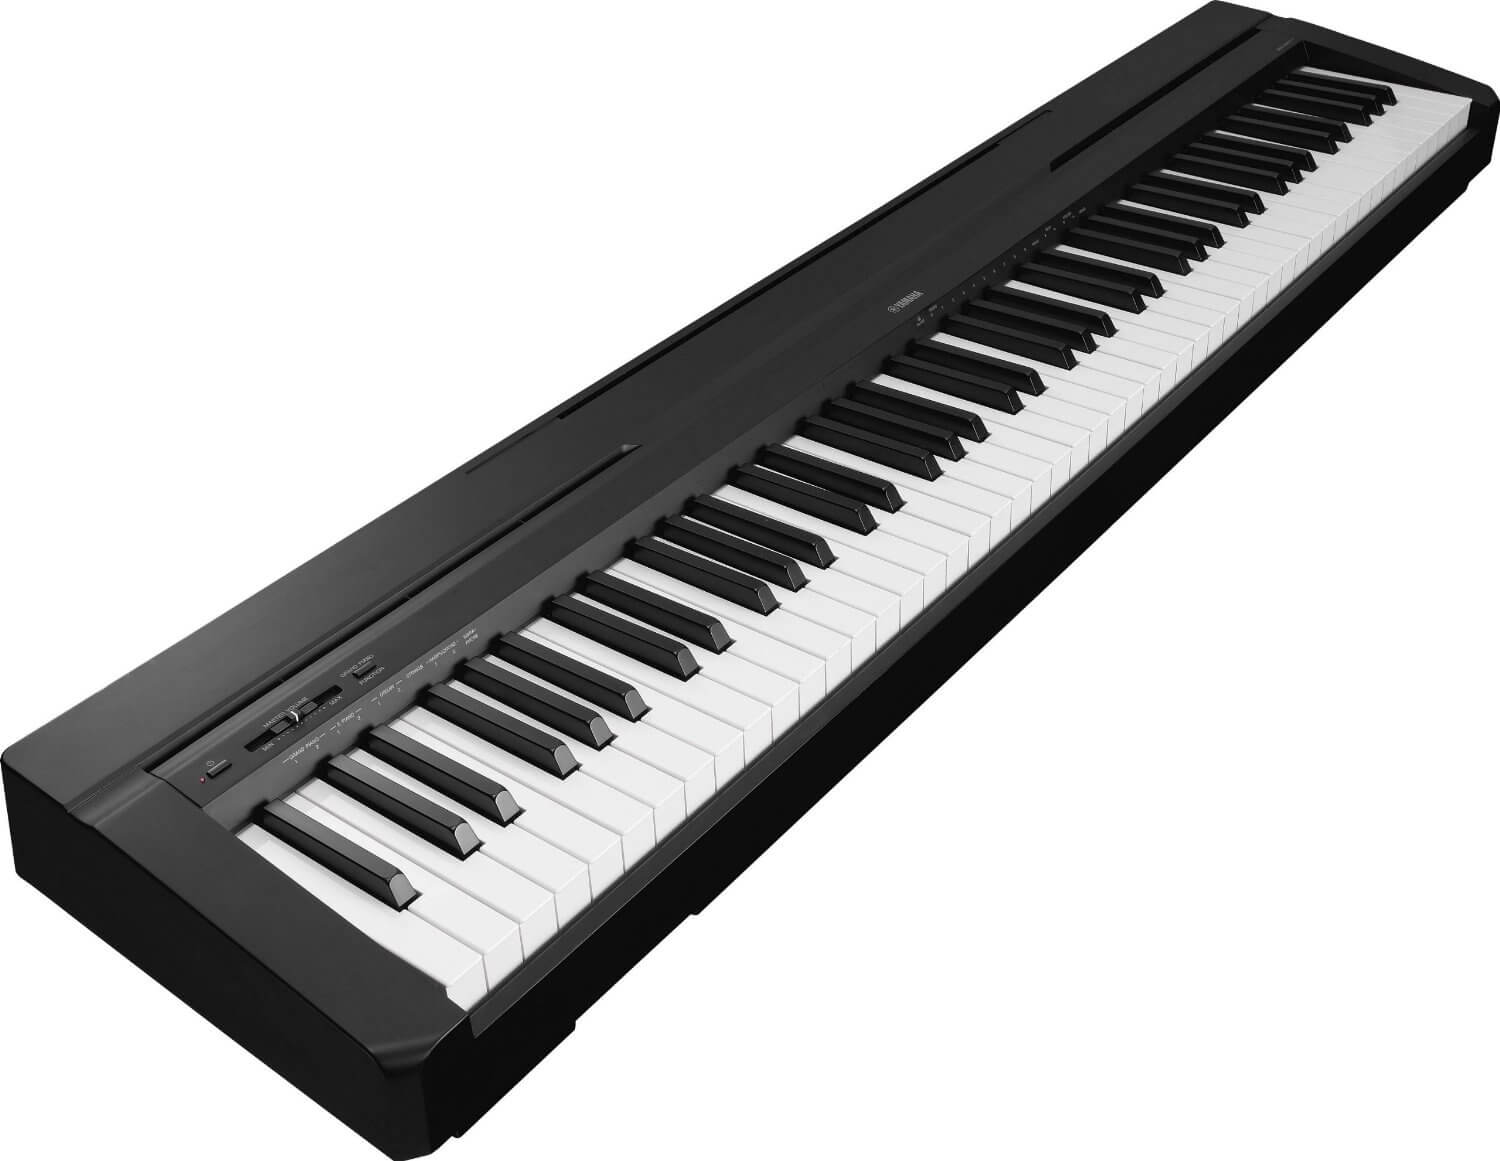 yamaha p 45b digital piano im test epiano. Black Bedroom Furniture Sets. Home Design Ideas